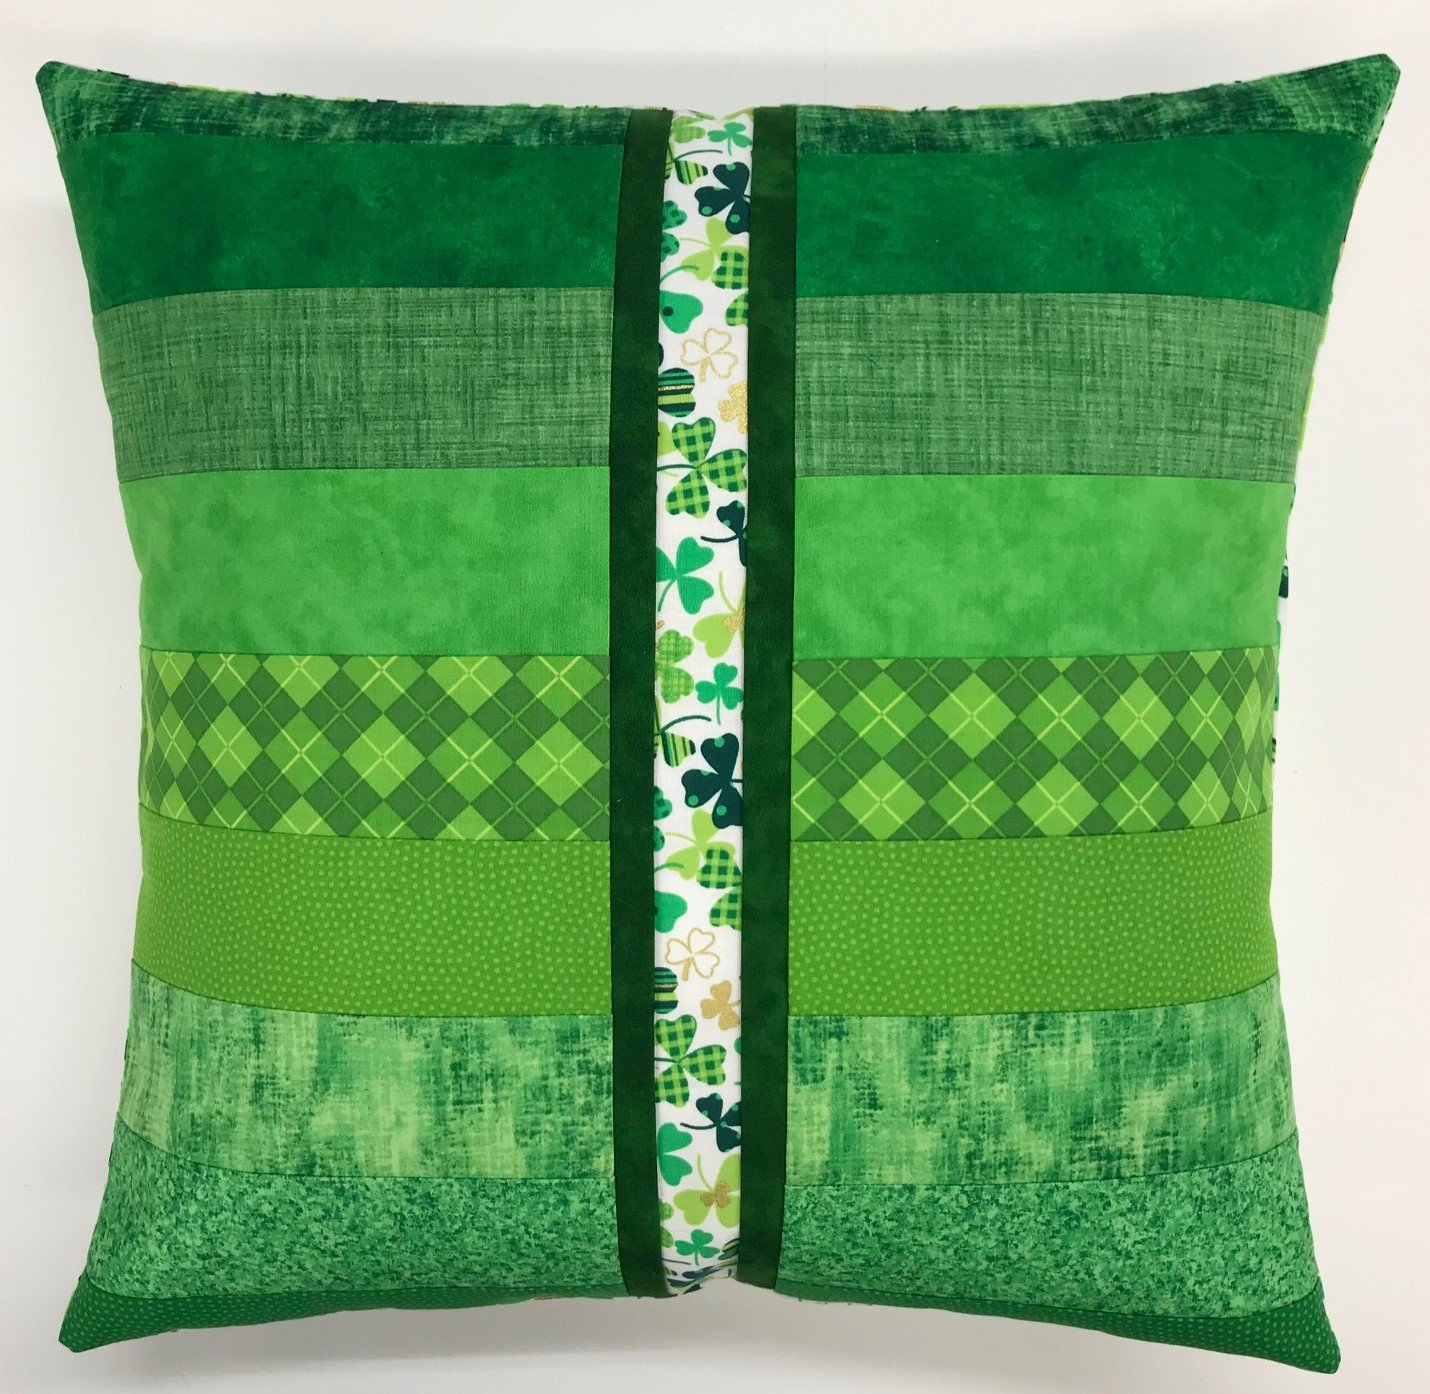 Beginner Rotary Cutter Pillow - St. Patrick's Day